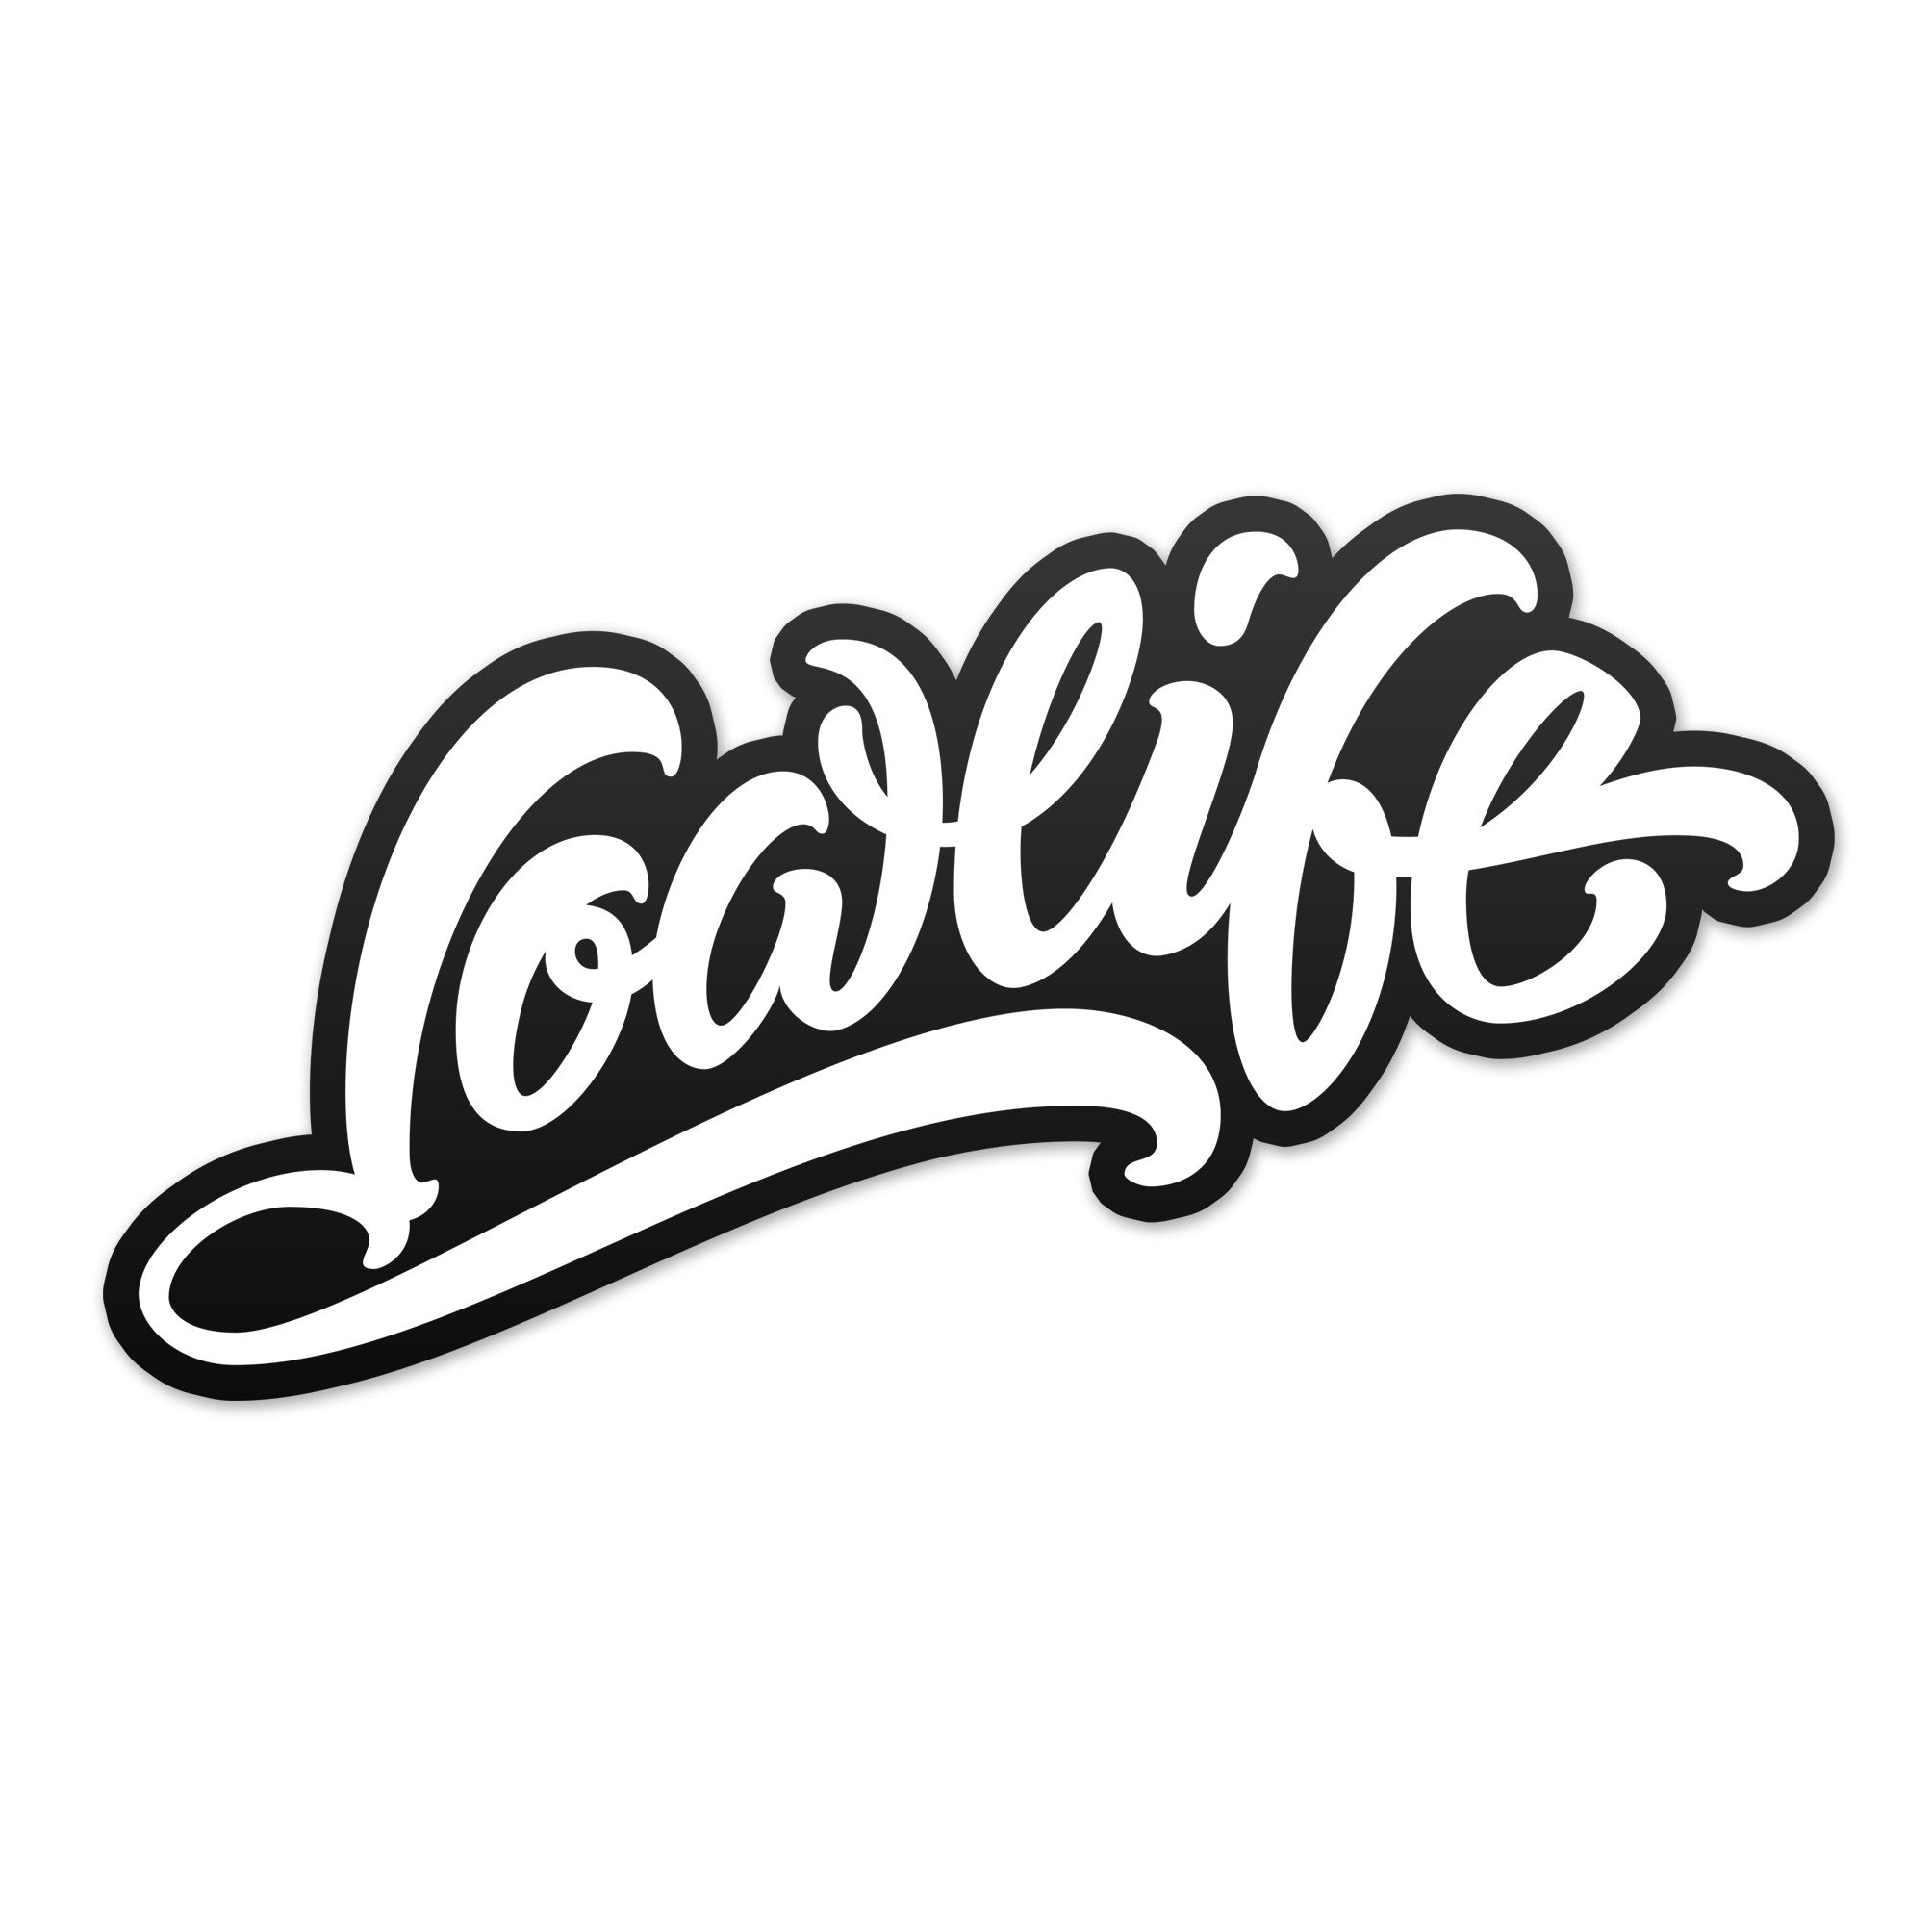 Lowlife Decal